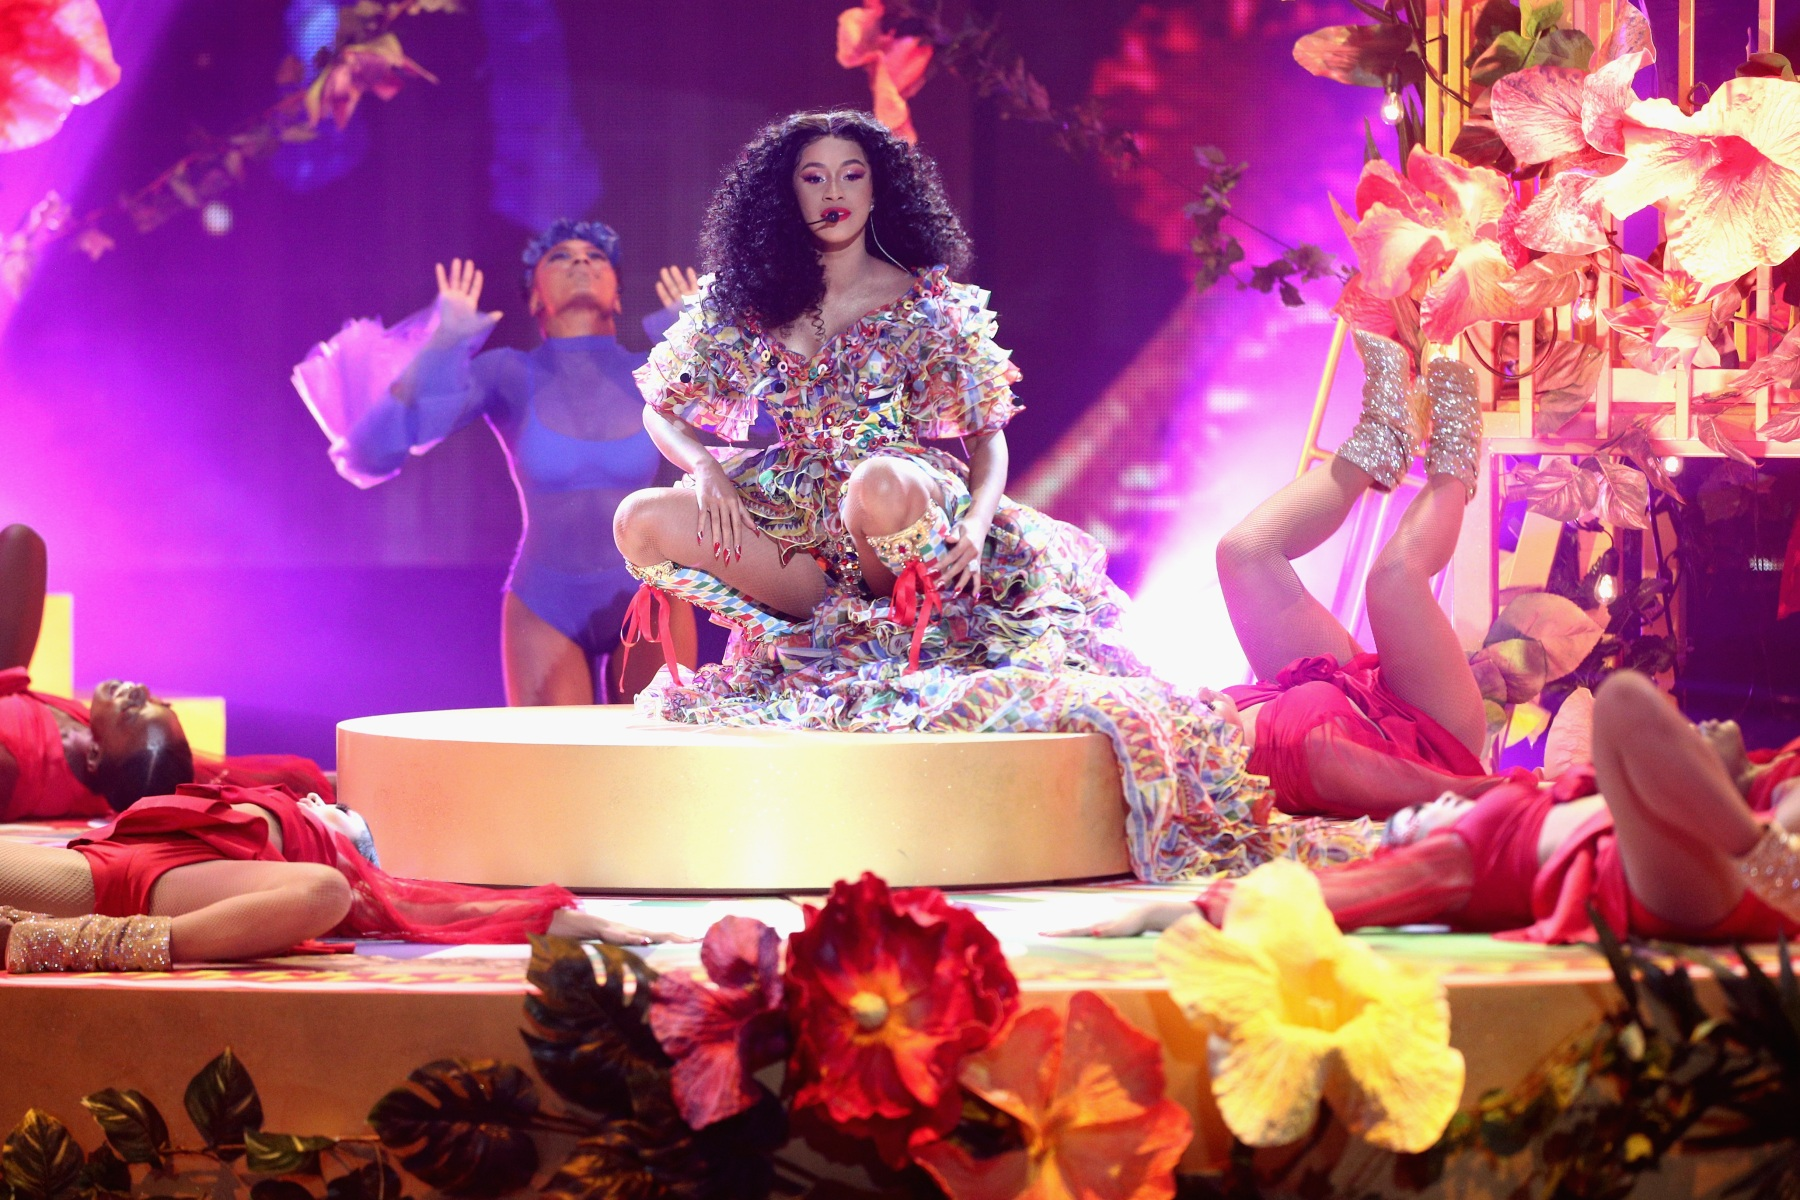 LOS ANGELES, CA - OCTOBER 09:  Cardi B performs onstage during the 2018 American Music Awards at Microsoft Theater on October 9, 2018 in Los Angeles, California.  (Photo by Frederick M. Brown/Getty Images)